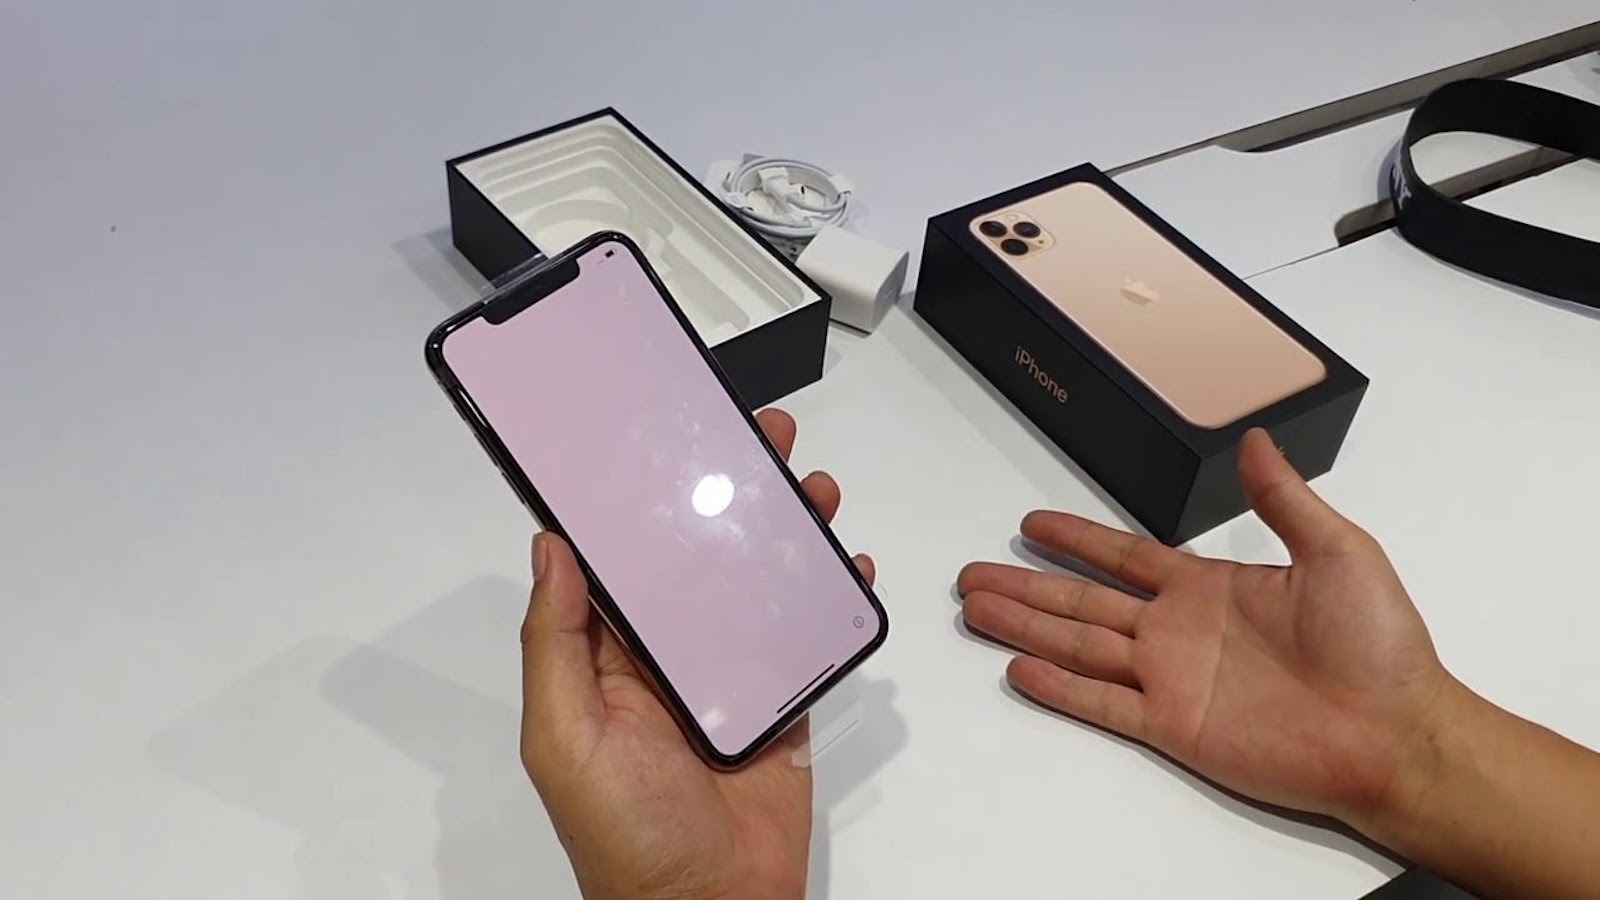 iphone-11-pro-max-unboxing.jpg